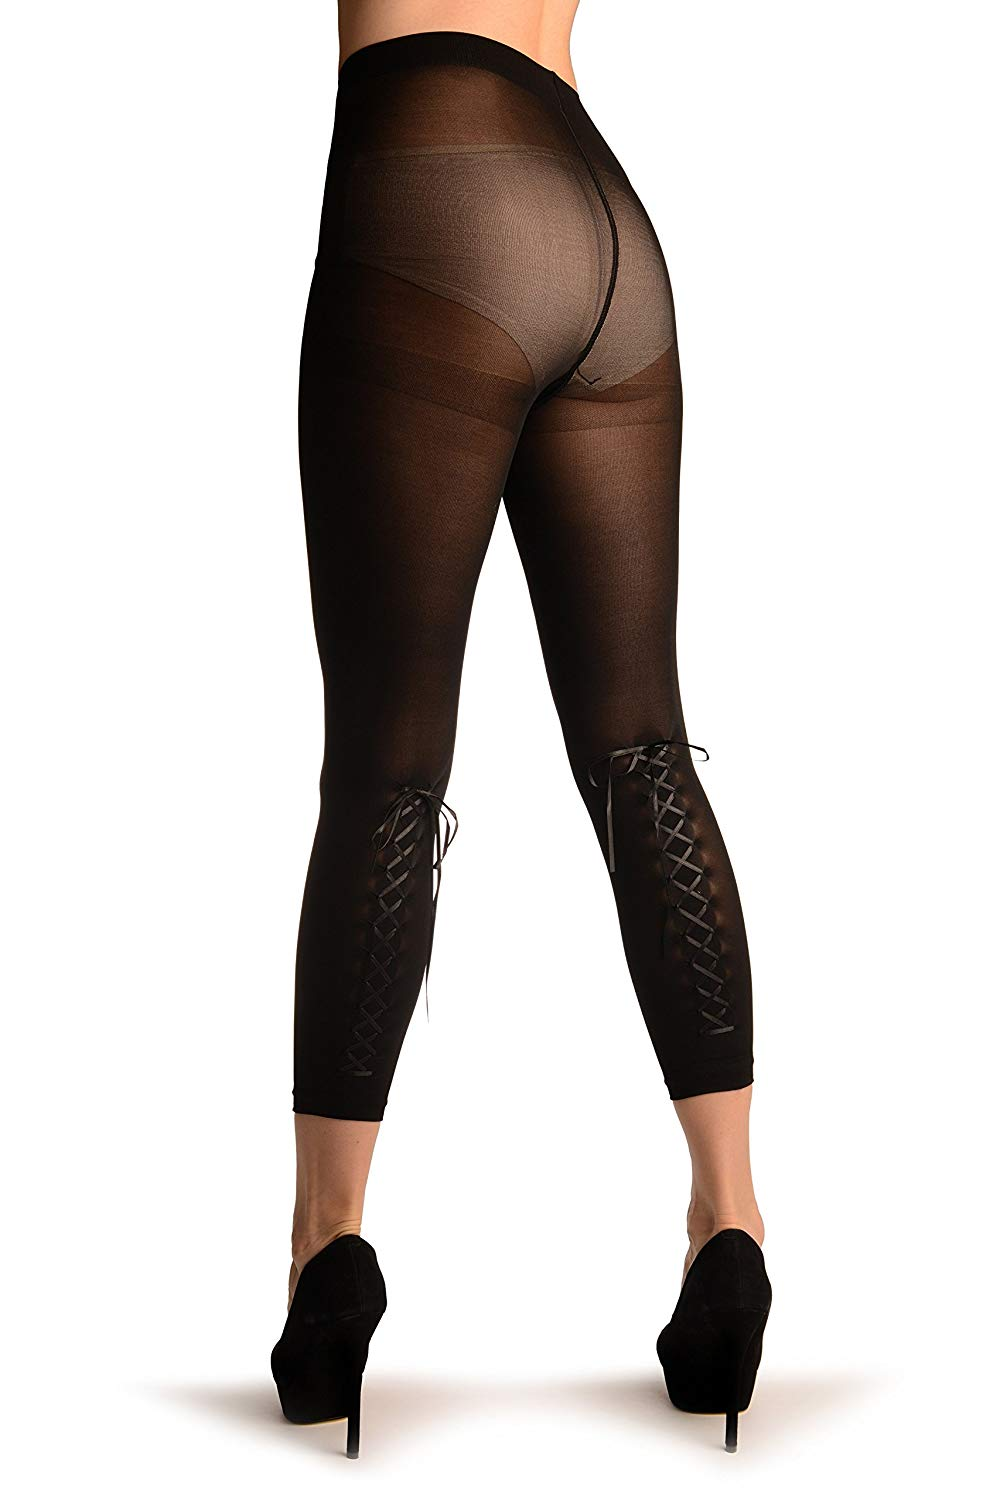 Girls black lace footless leggings — img 10